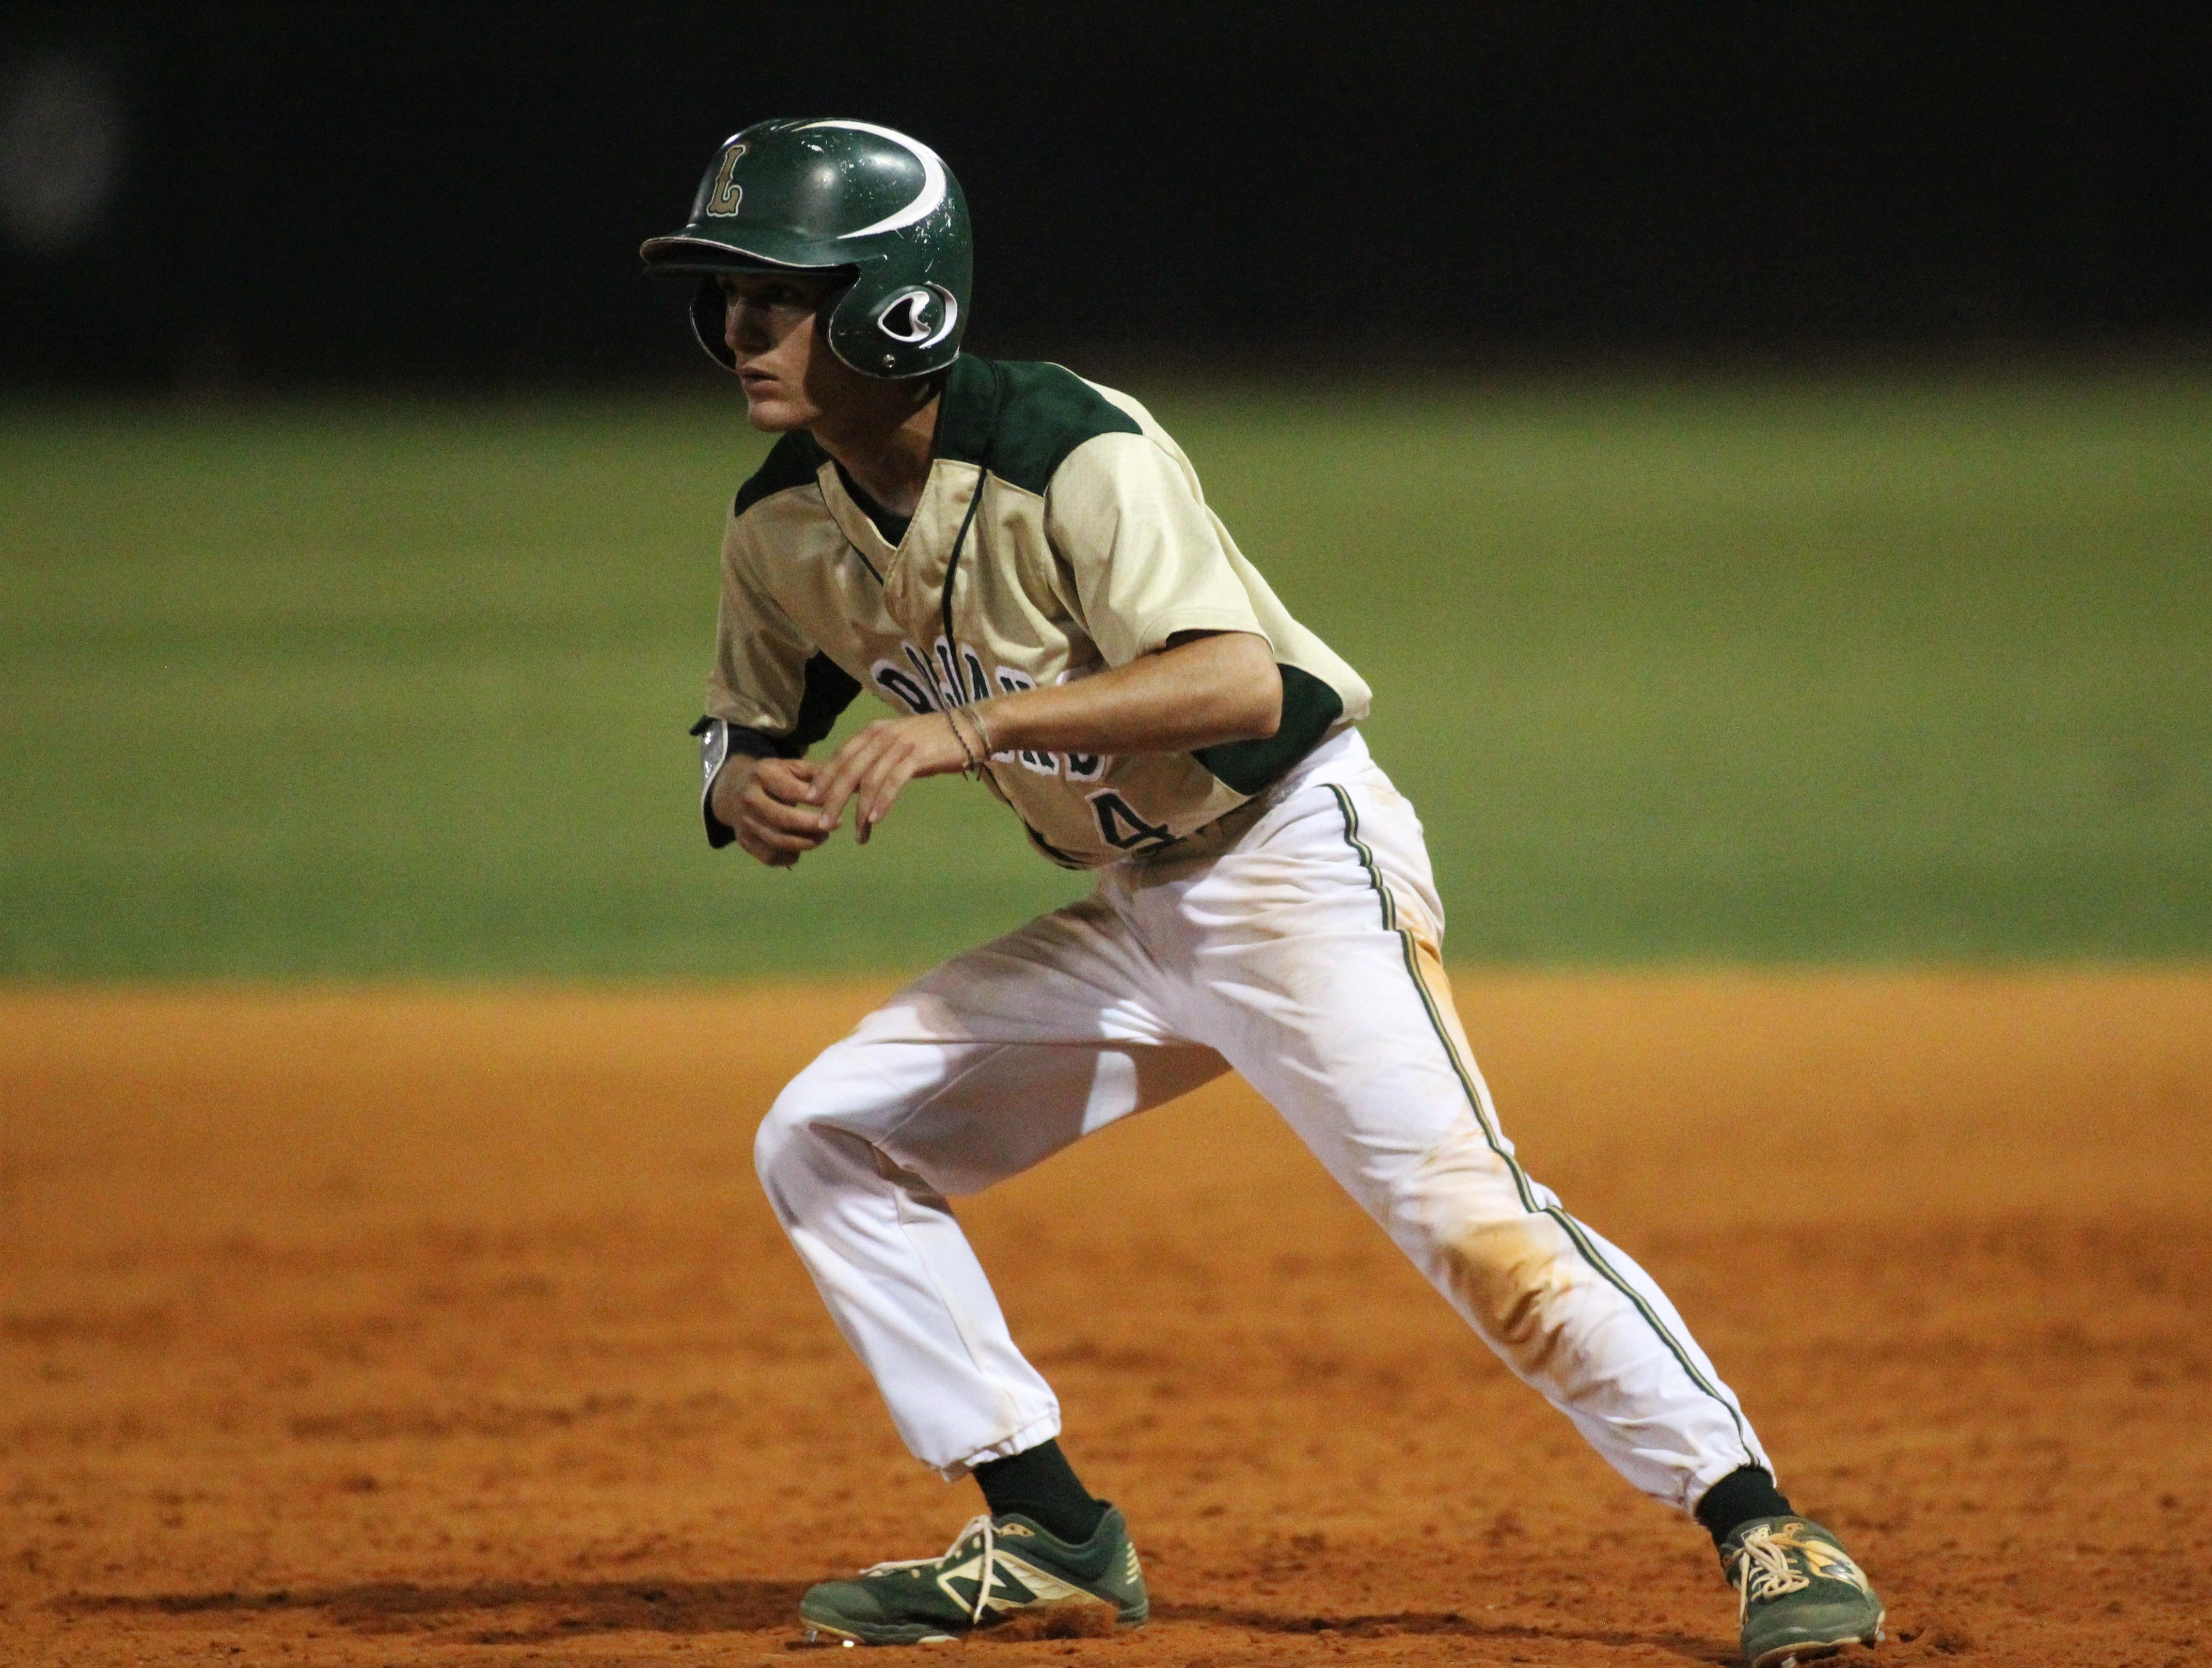 Lincoln senior Caleb Kittrell takes a lead off first base after a single as Lincoln baseball beat Chiles 5-4  in 10 innings during a District 2-8A championship game on Thursday, May 9, 2019.